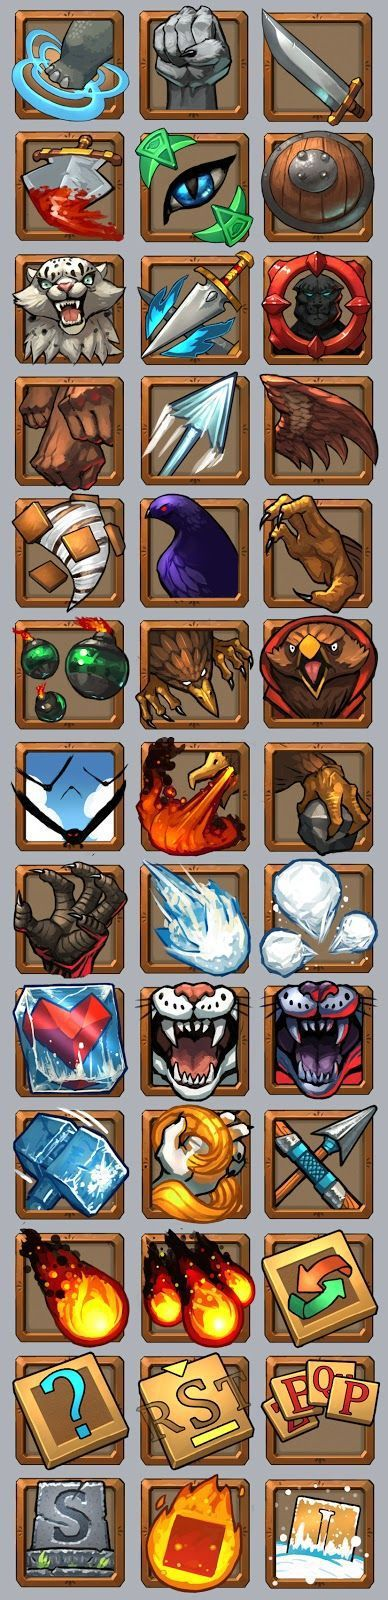 More icons!!